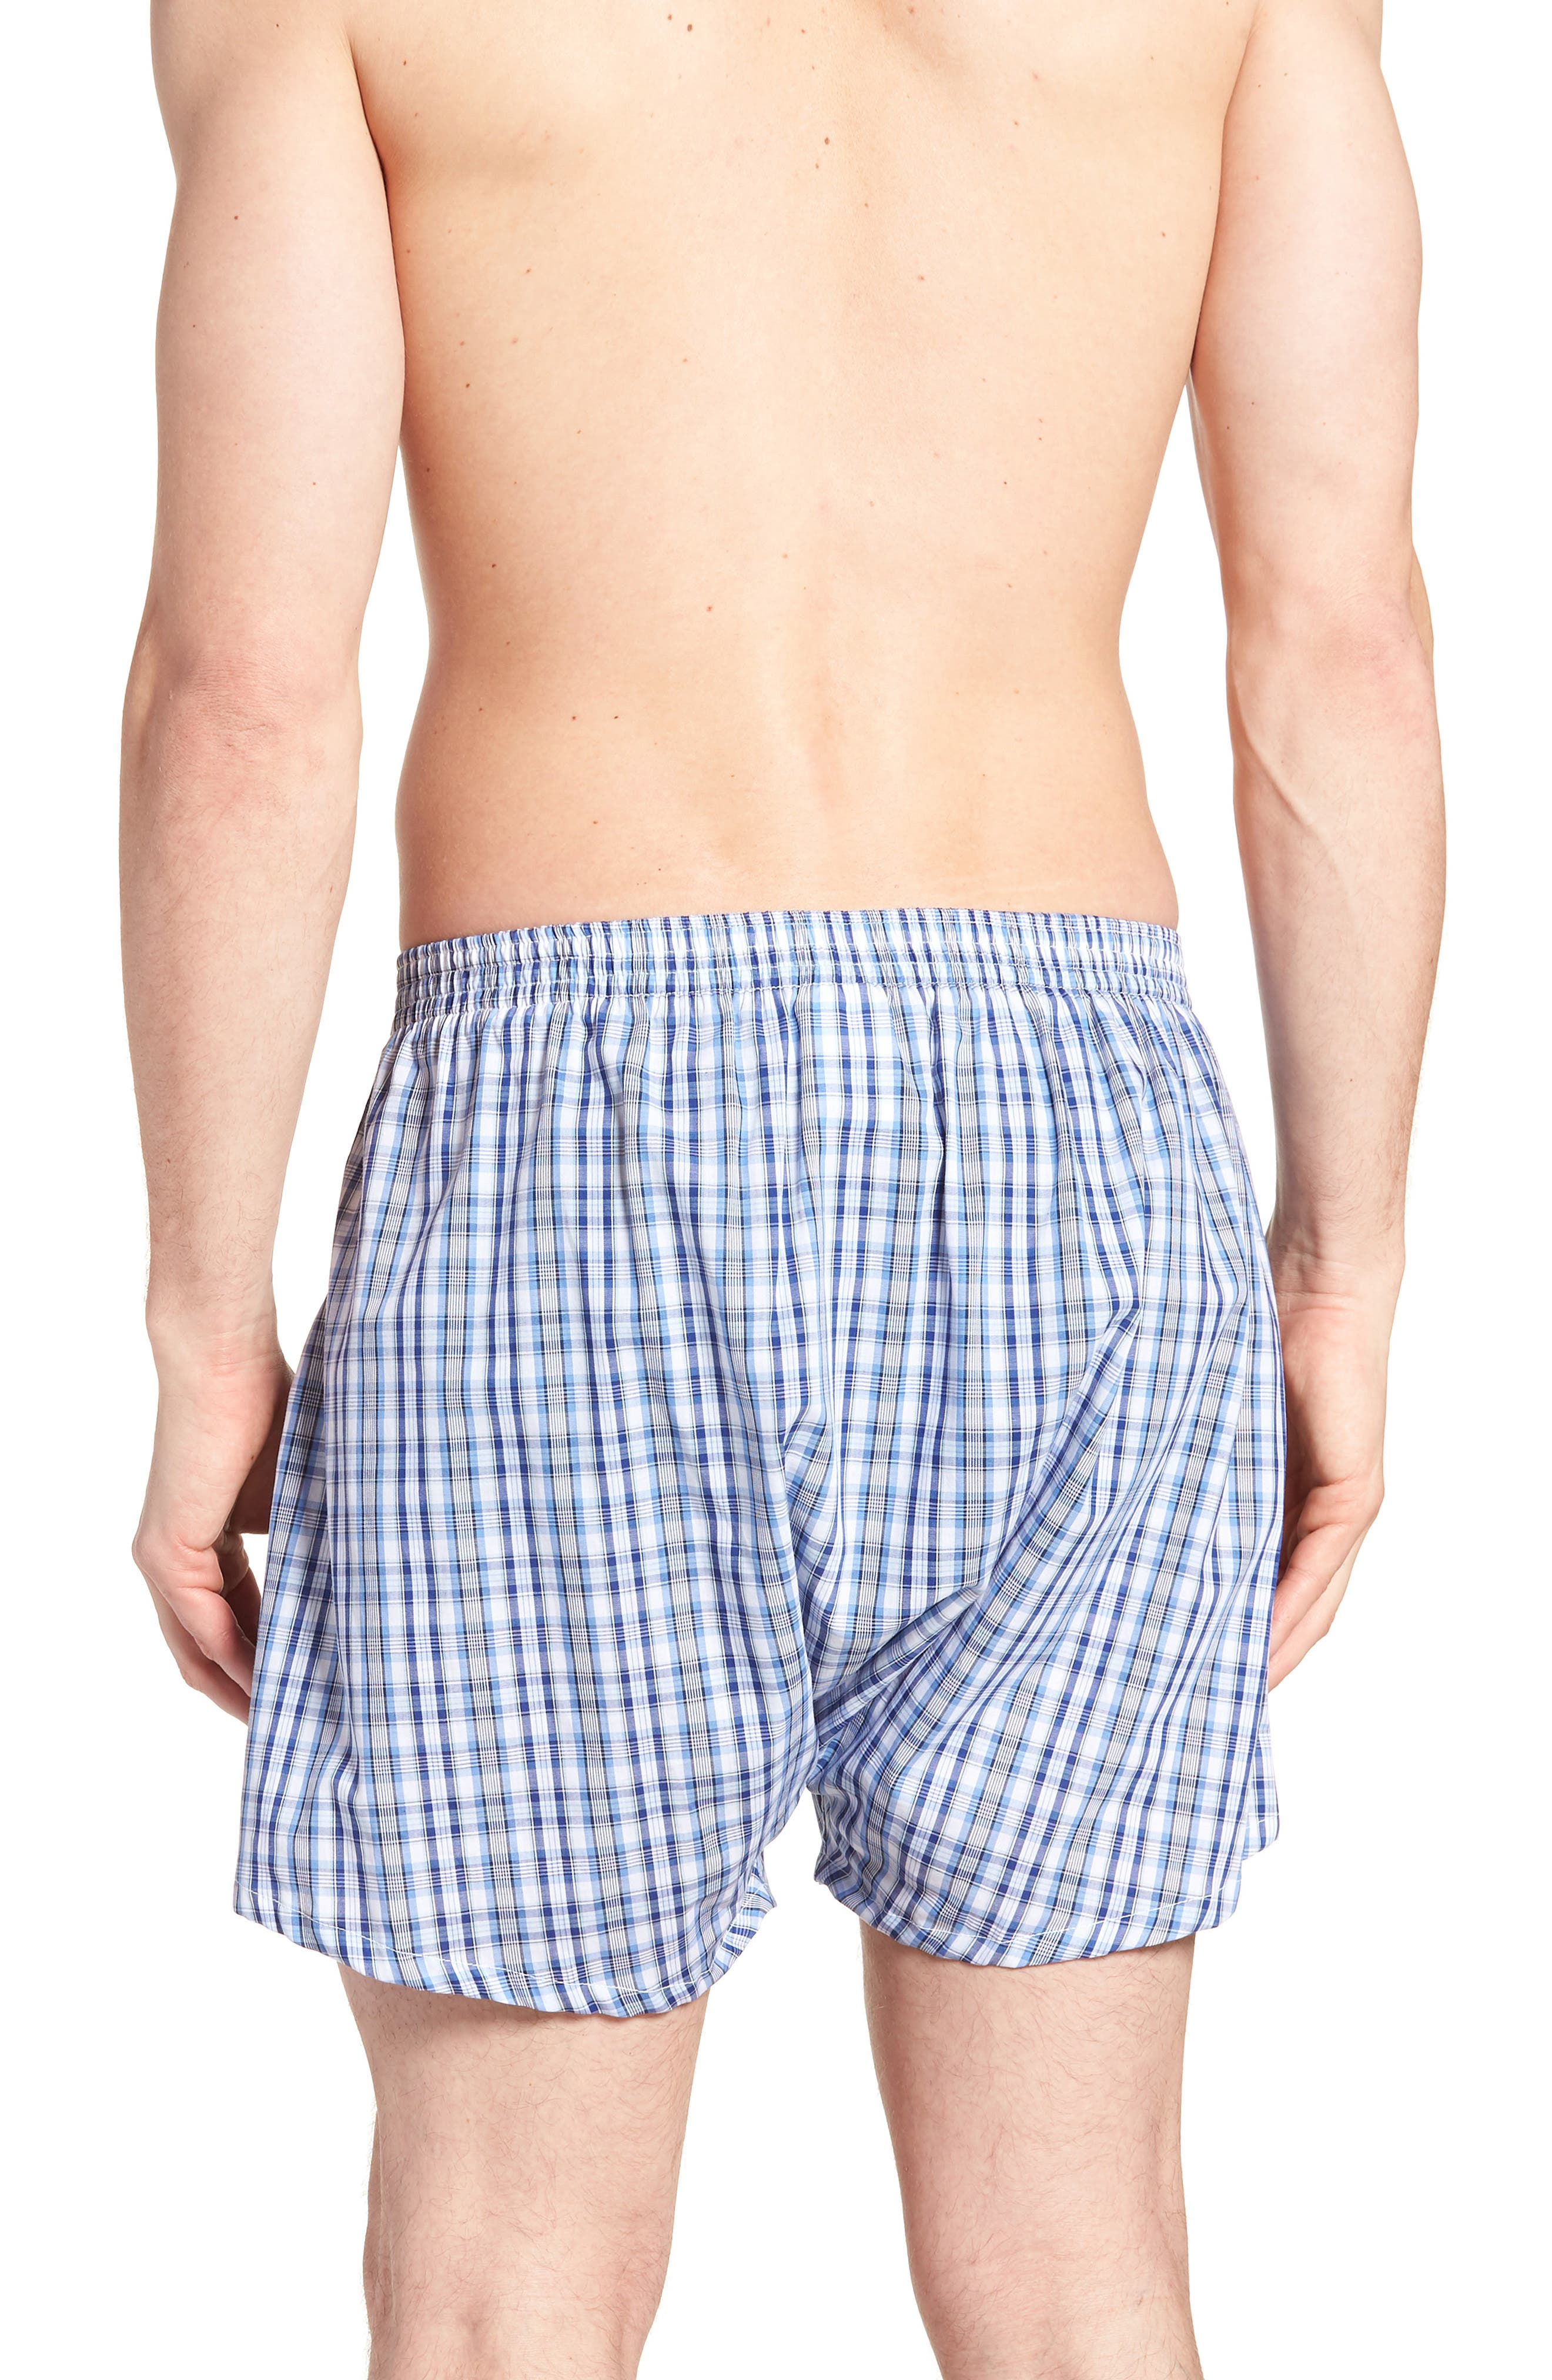 3-Pack Classic Fit Boxers,                             Alternate thumbnail 3, color,                             BLUE DAZZLE SOLID- PLAID PACK